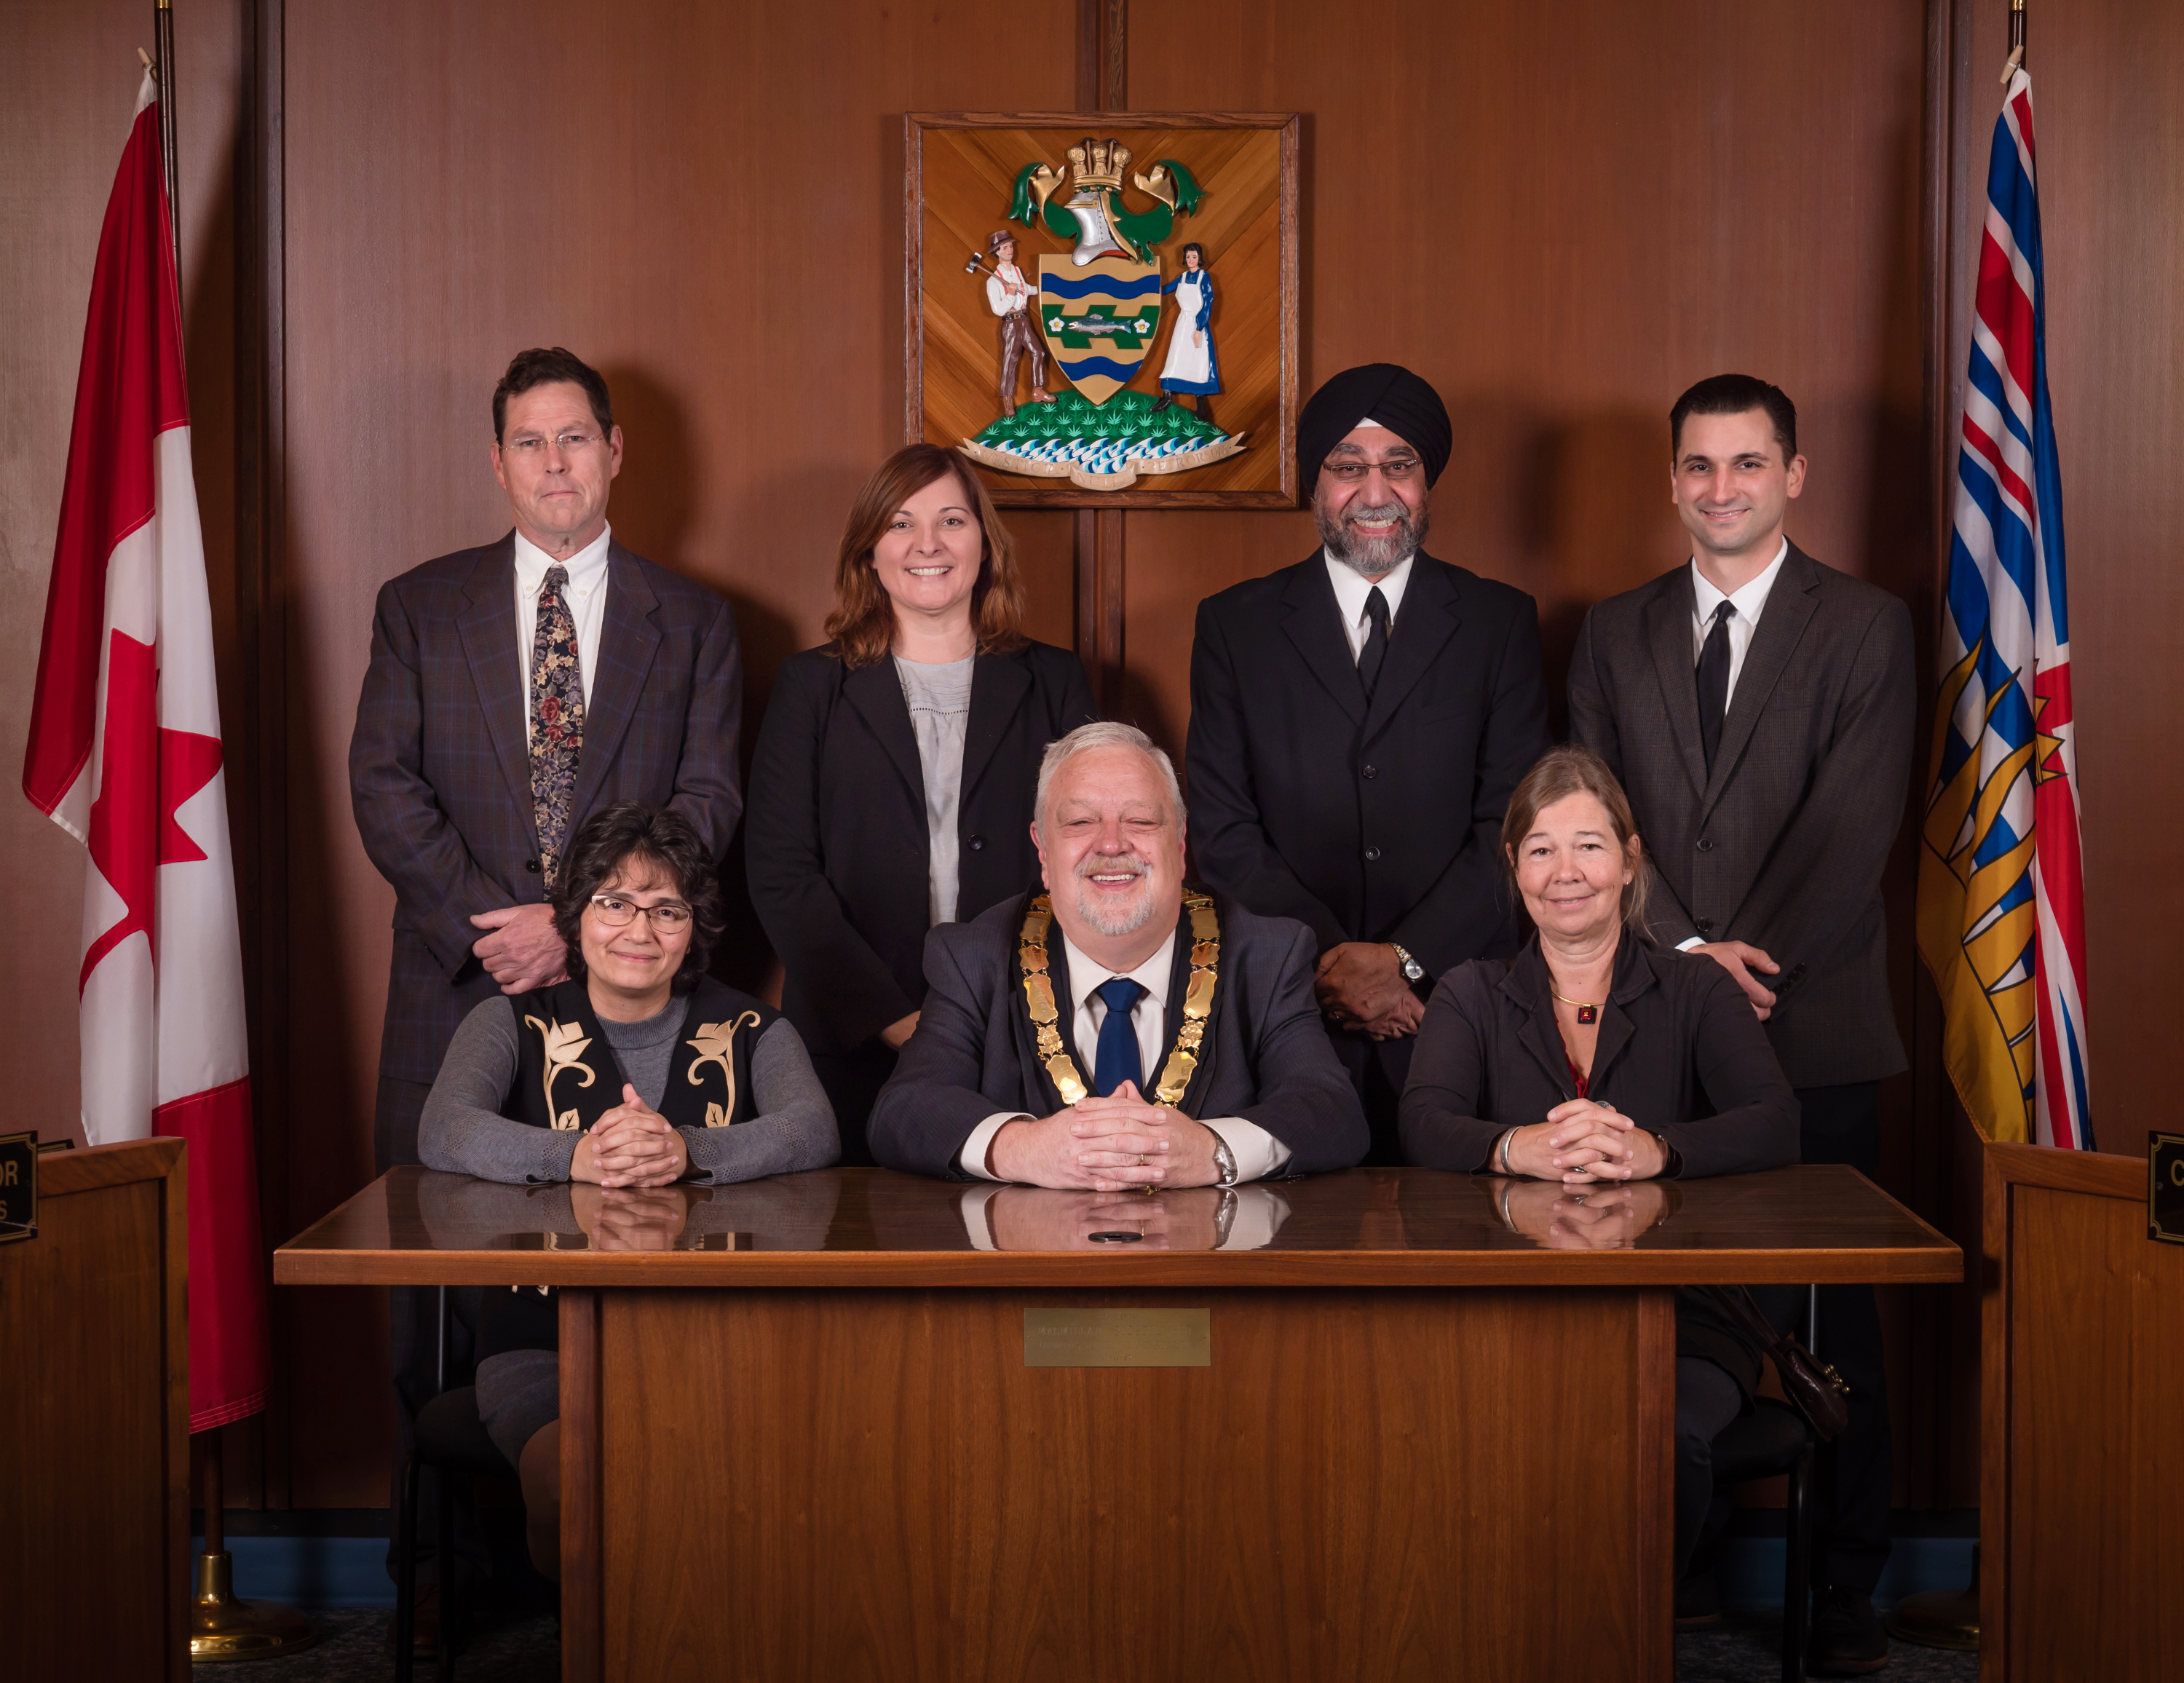 North Cowichan Mayor and Council